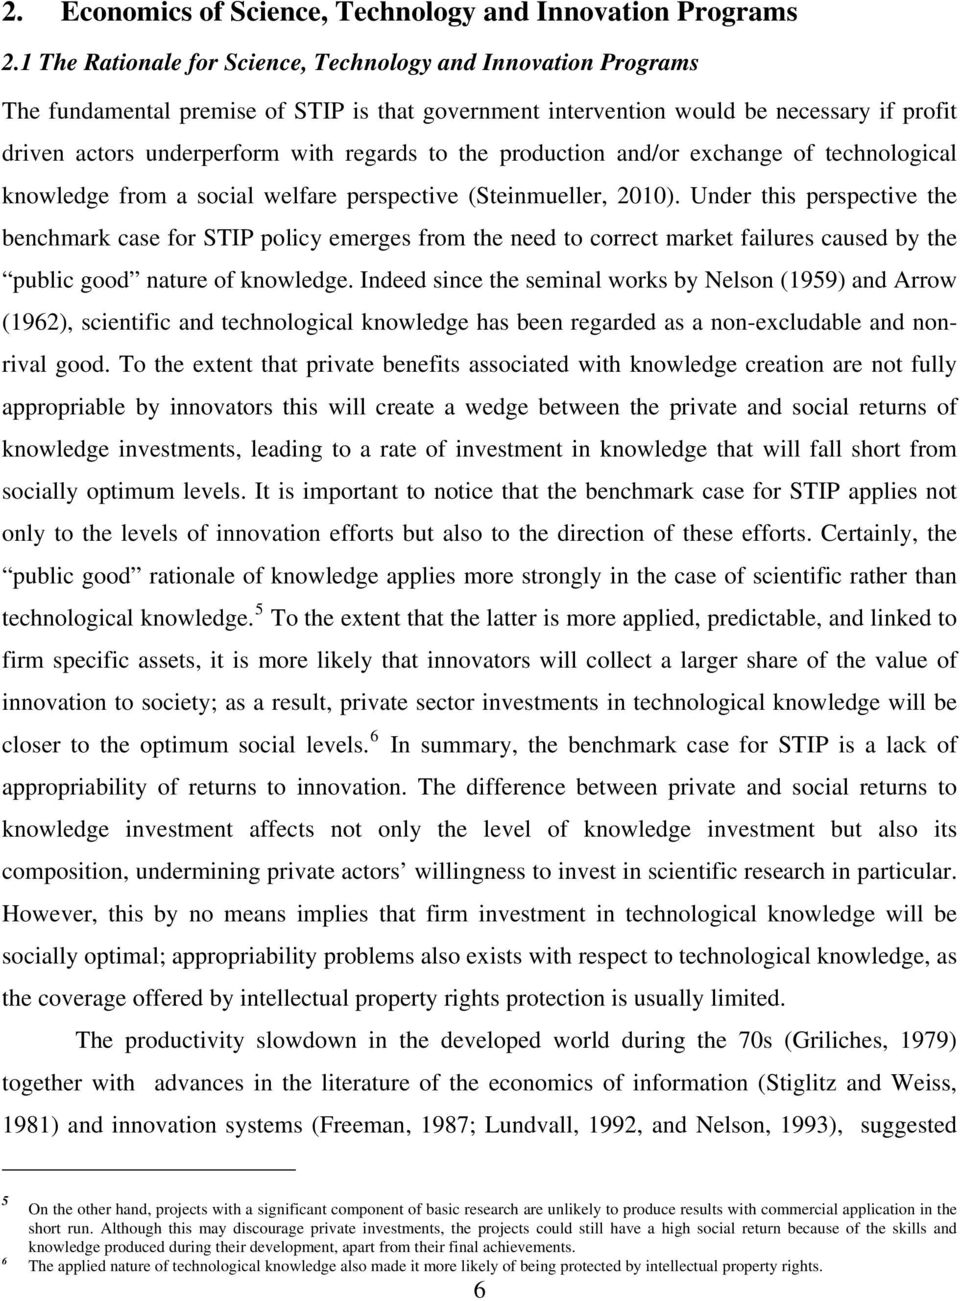 the production and/or exchange of technological knowledge from a social welfare perspective (Steinmueller, 2010).